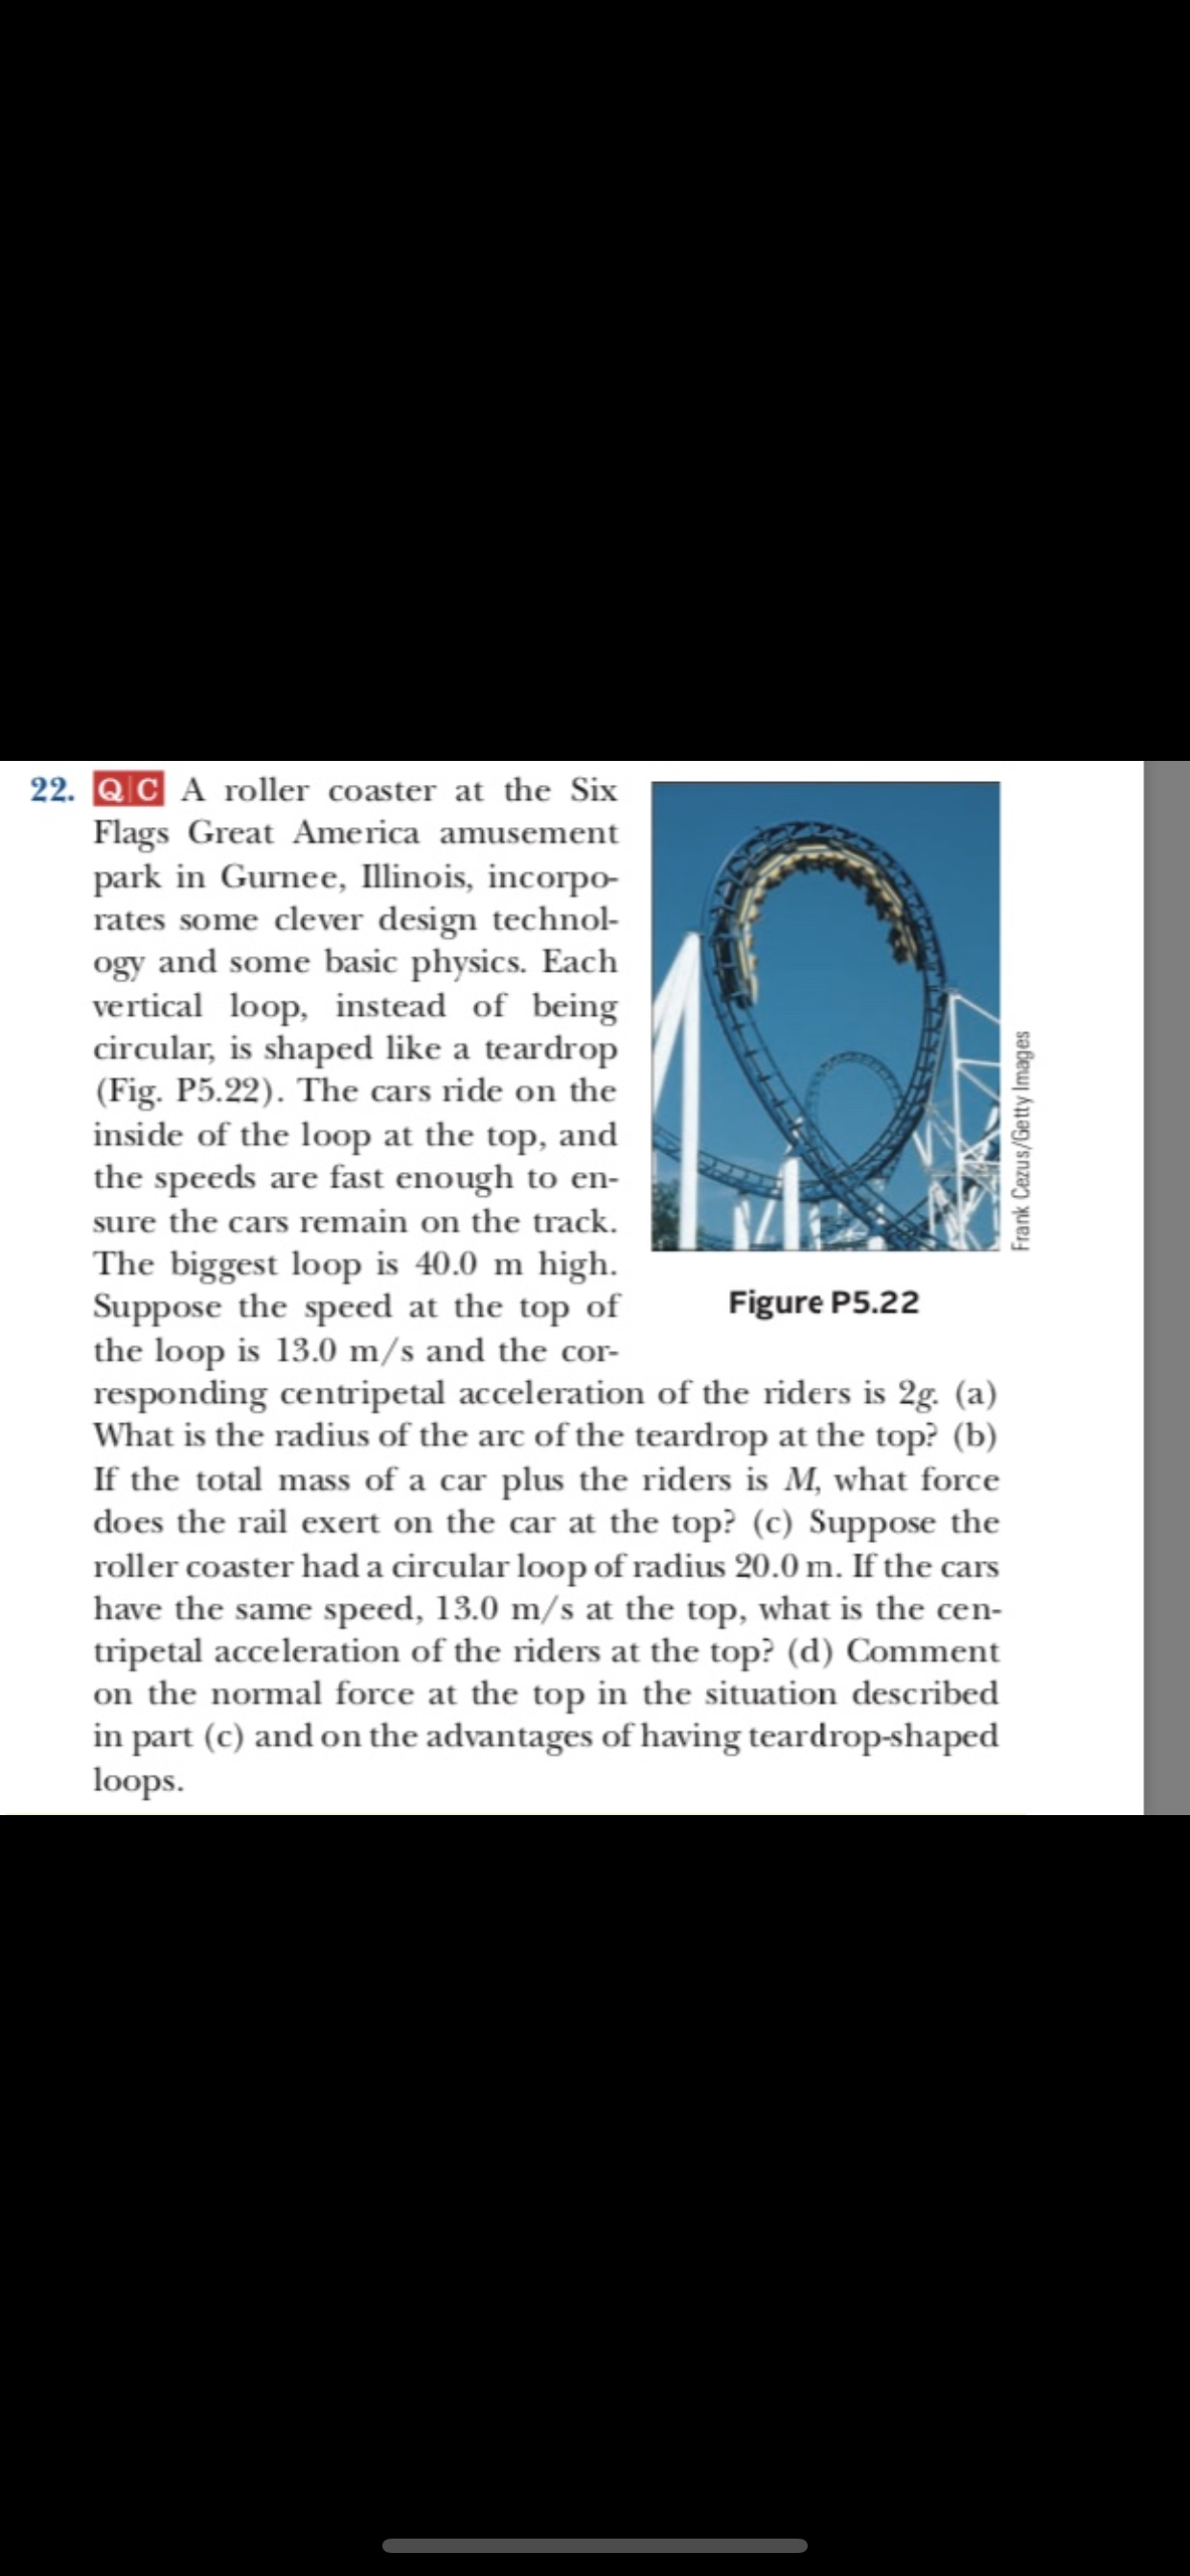 22. QC A roller coaster at the Six Flags Great America amusement park in Gurnee, llinois, incorpo rates some clever design technol ogy and some basic physics. Each vertical loop, instead of being circular, is shaped like a teardrop (Fig. P5.22). The cars ride on the inside of the loop at the top, and the speeds are fast enough to en- sure the cars remain on the track. The biggest loop is 40.0 m high Suppose the speed at the top of the loop is 13.0 m/s and the cor responding centripetal acceleration of the riders is 2g. (a) What is the radius of the arc of the teardrop at the top? (b) If the total mass of a car plus the riders is M, what force does the rail exert on the car at the top? (c) Suppose the roller coaster had a circular loop of radius 20.0 m. If the cars have the same speed, 13.0 m/s at the top, what is the cen- tripetal acceleration of the riders at the top? (d) Comment on the normal force at the top in the situation described in part (c) and on the advantages of having teardrop-shaped loops Figure P5.22 Frank Cezus/Getty Images